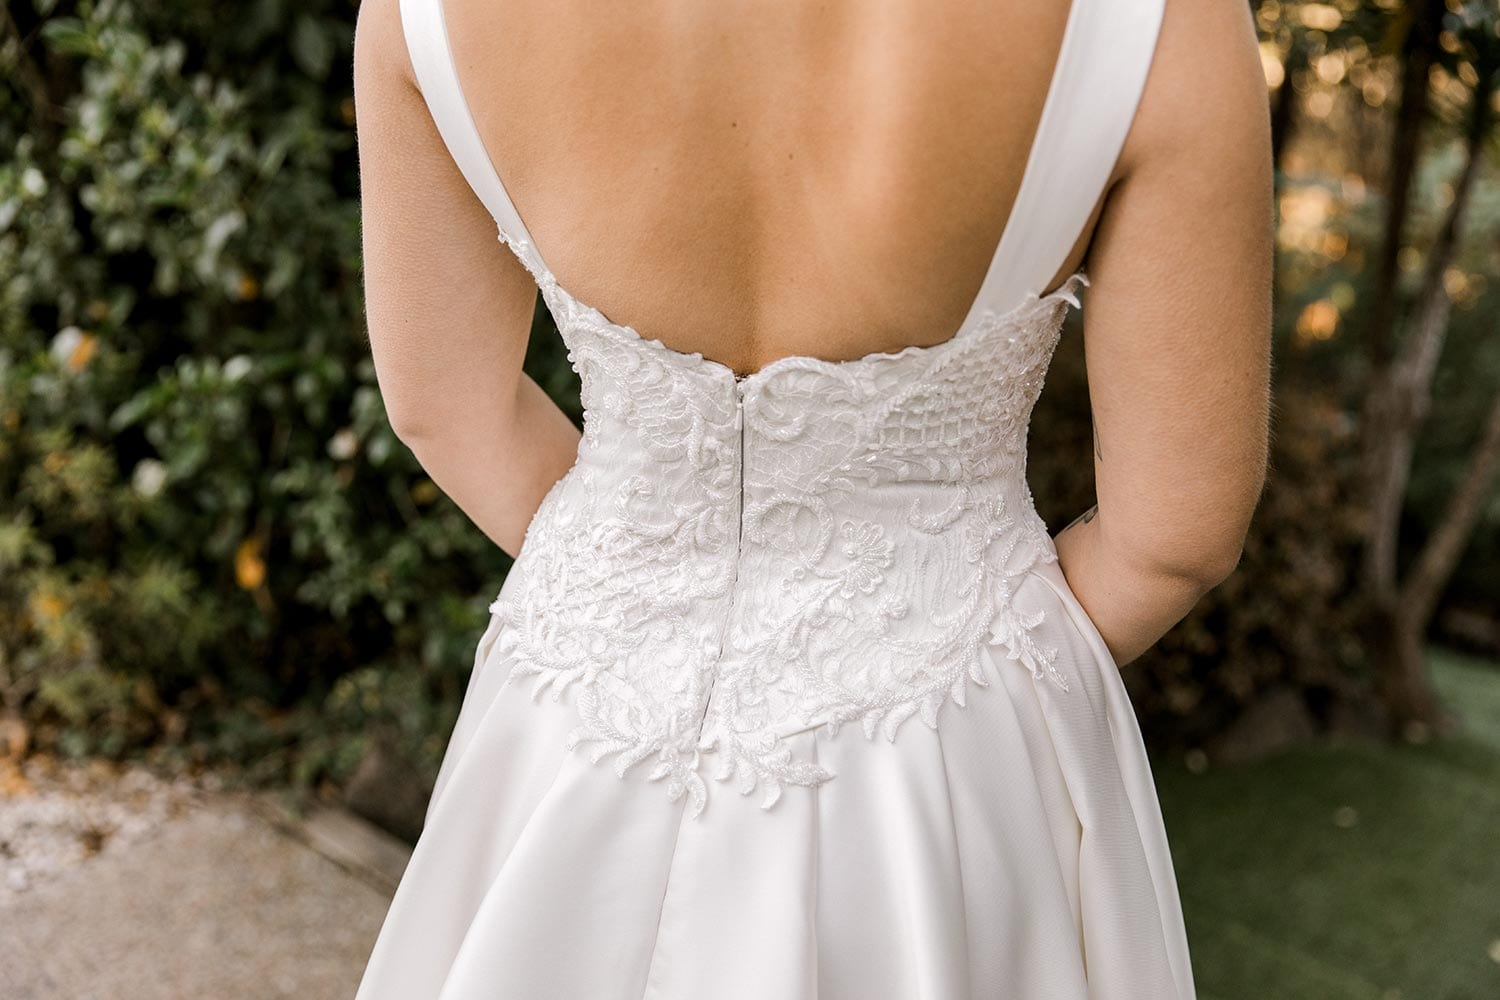 Victoria Wedding Dress by Vinka Design - Dramatic & luxurious Mikado silk wedding dress. Sweetheart neckline, sculptured & fitted bodice, & full skirt with irregular folds emphasize the waist. Photographed in landscaped gardens - lower back detail.